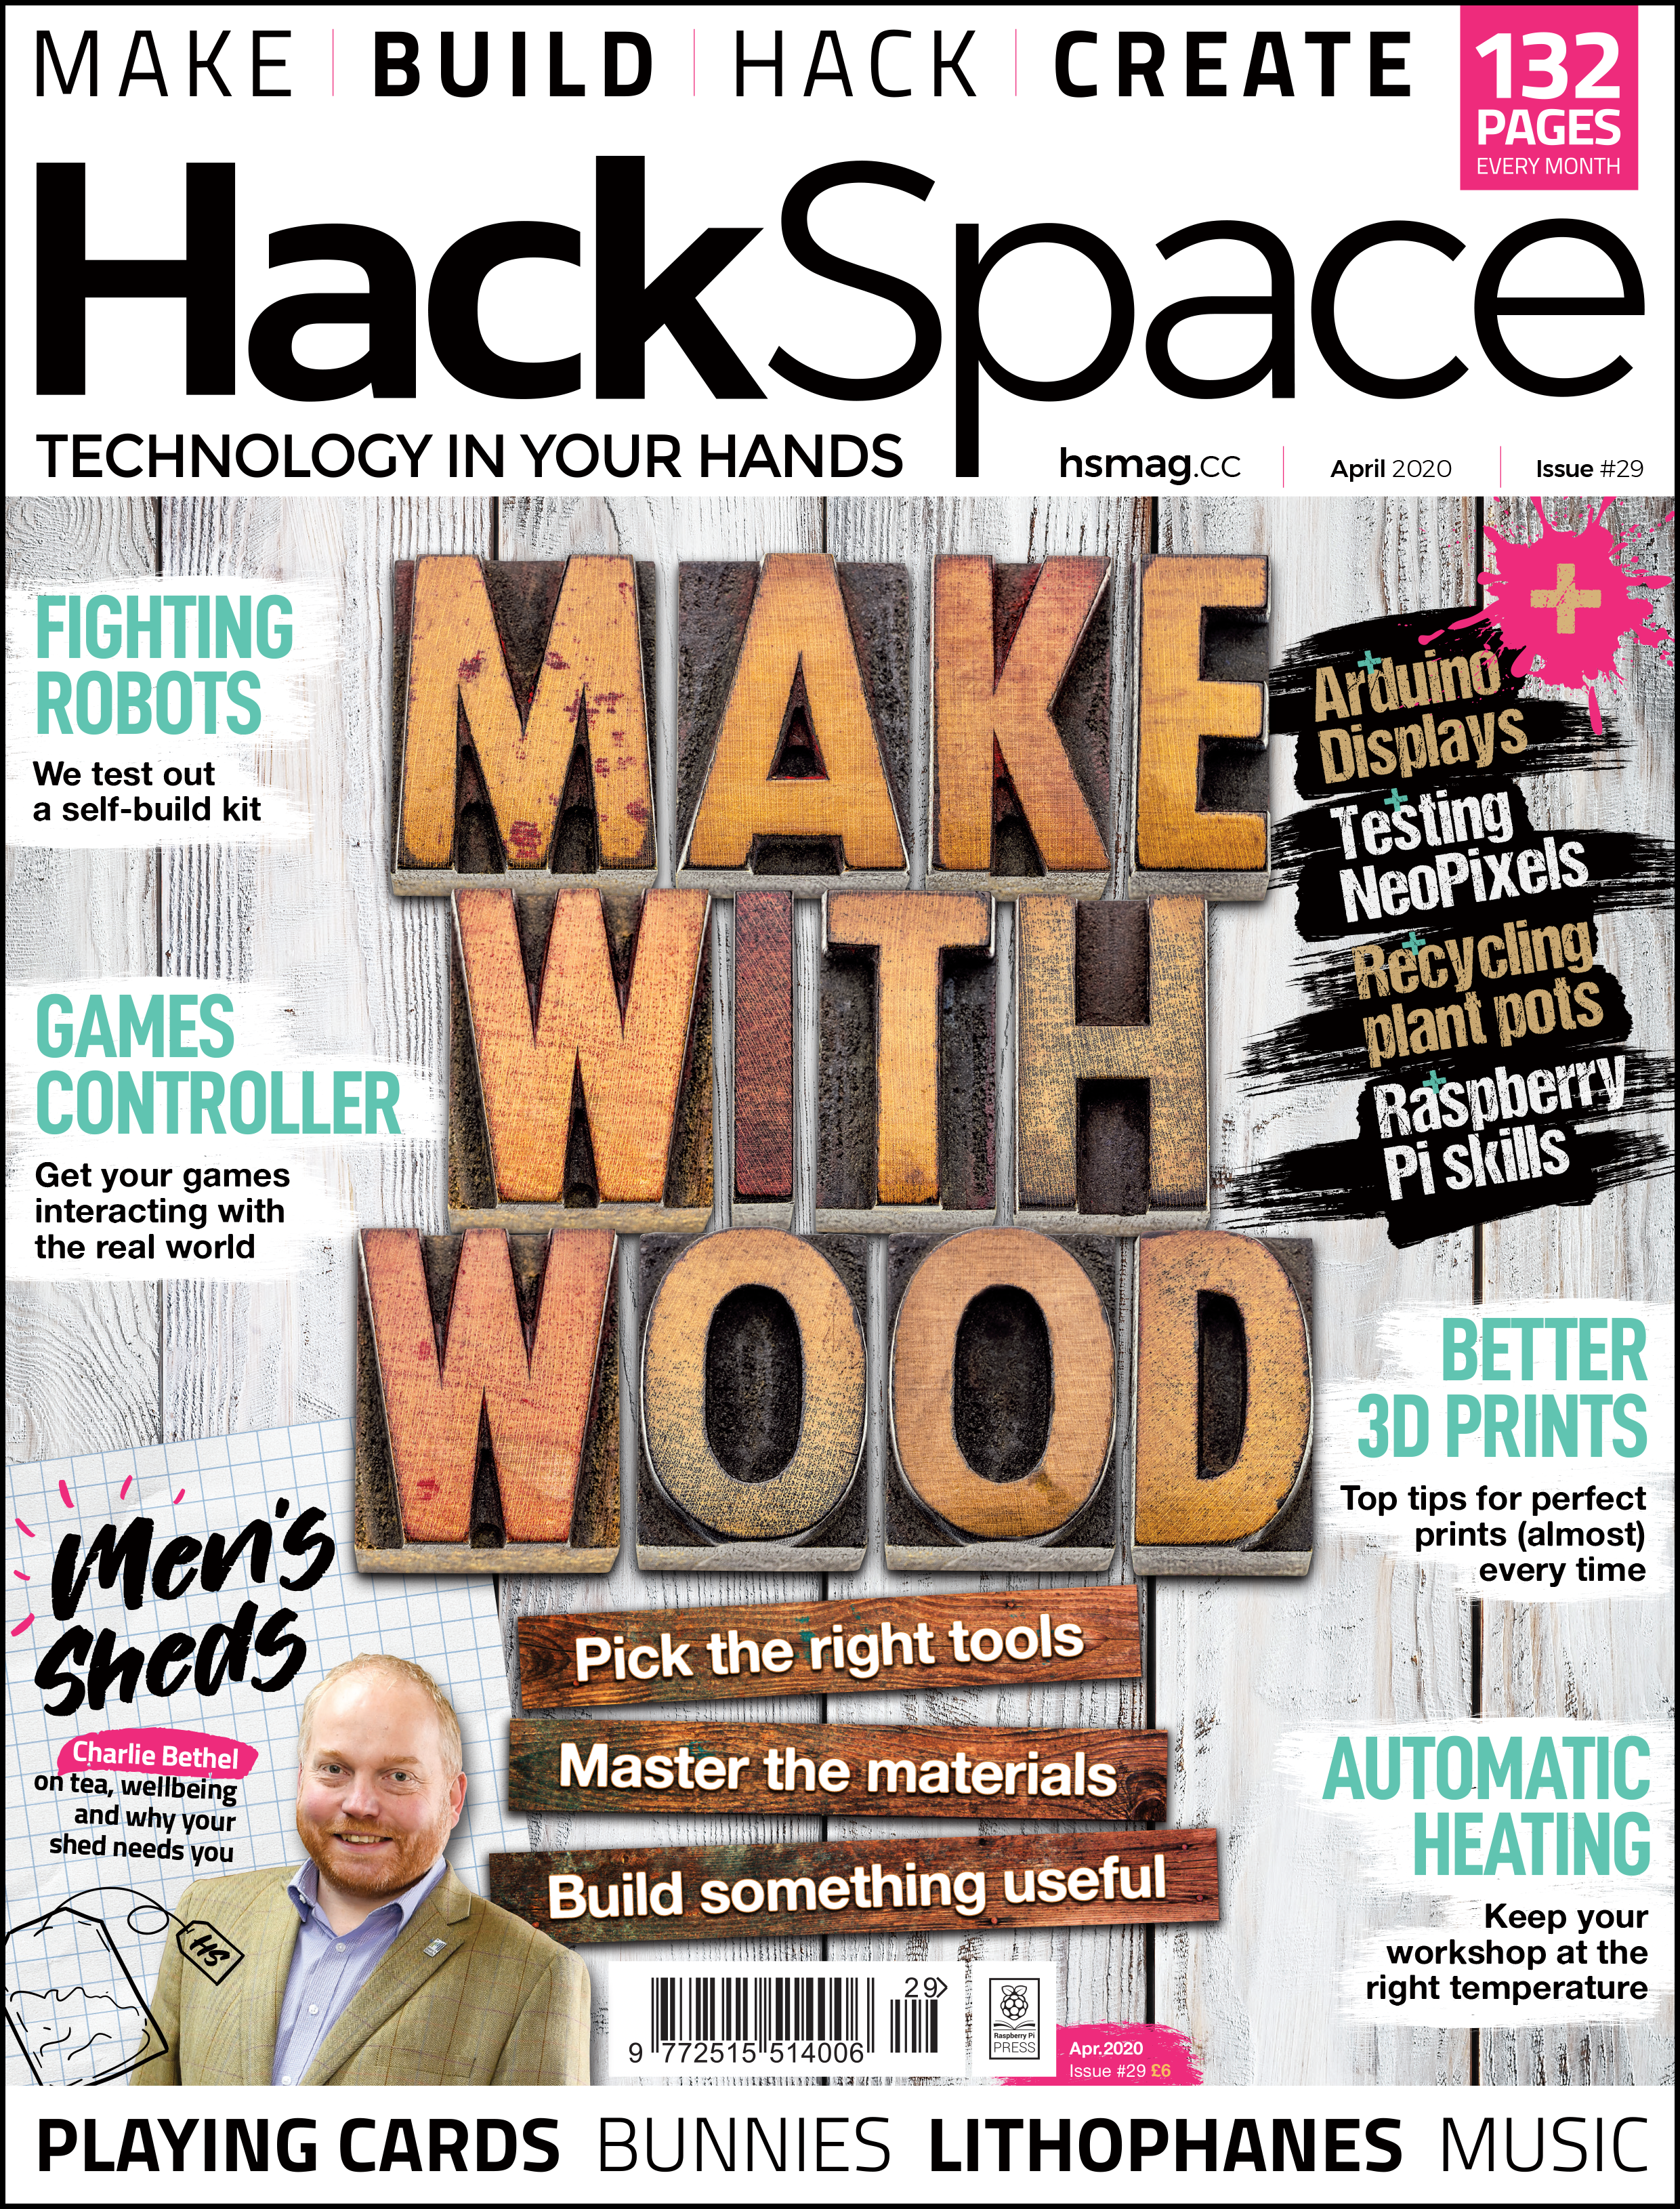 HackSpace magazine issue 29 cover